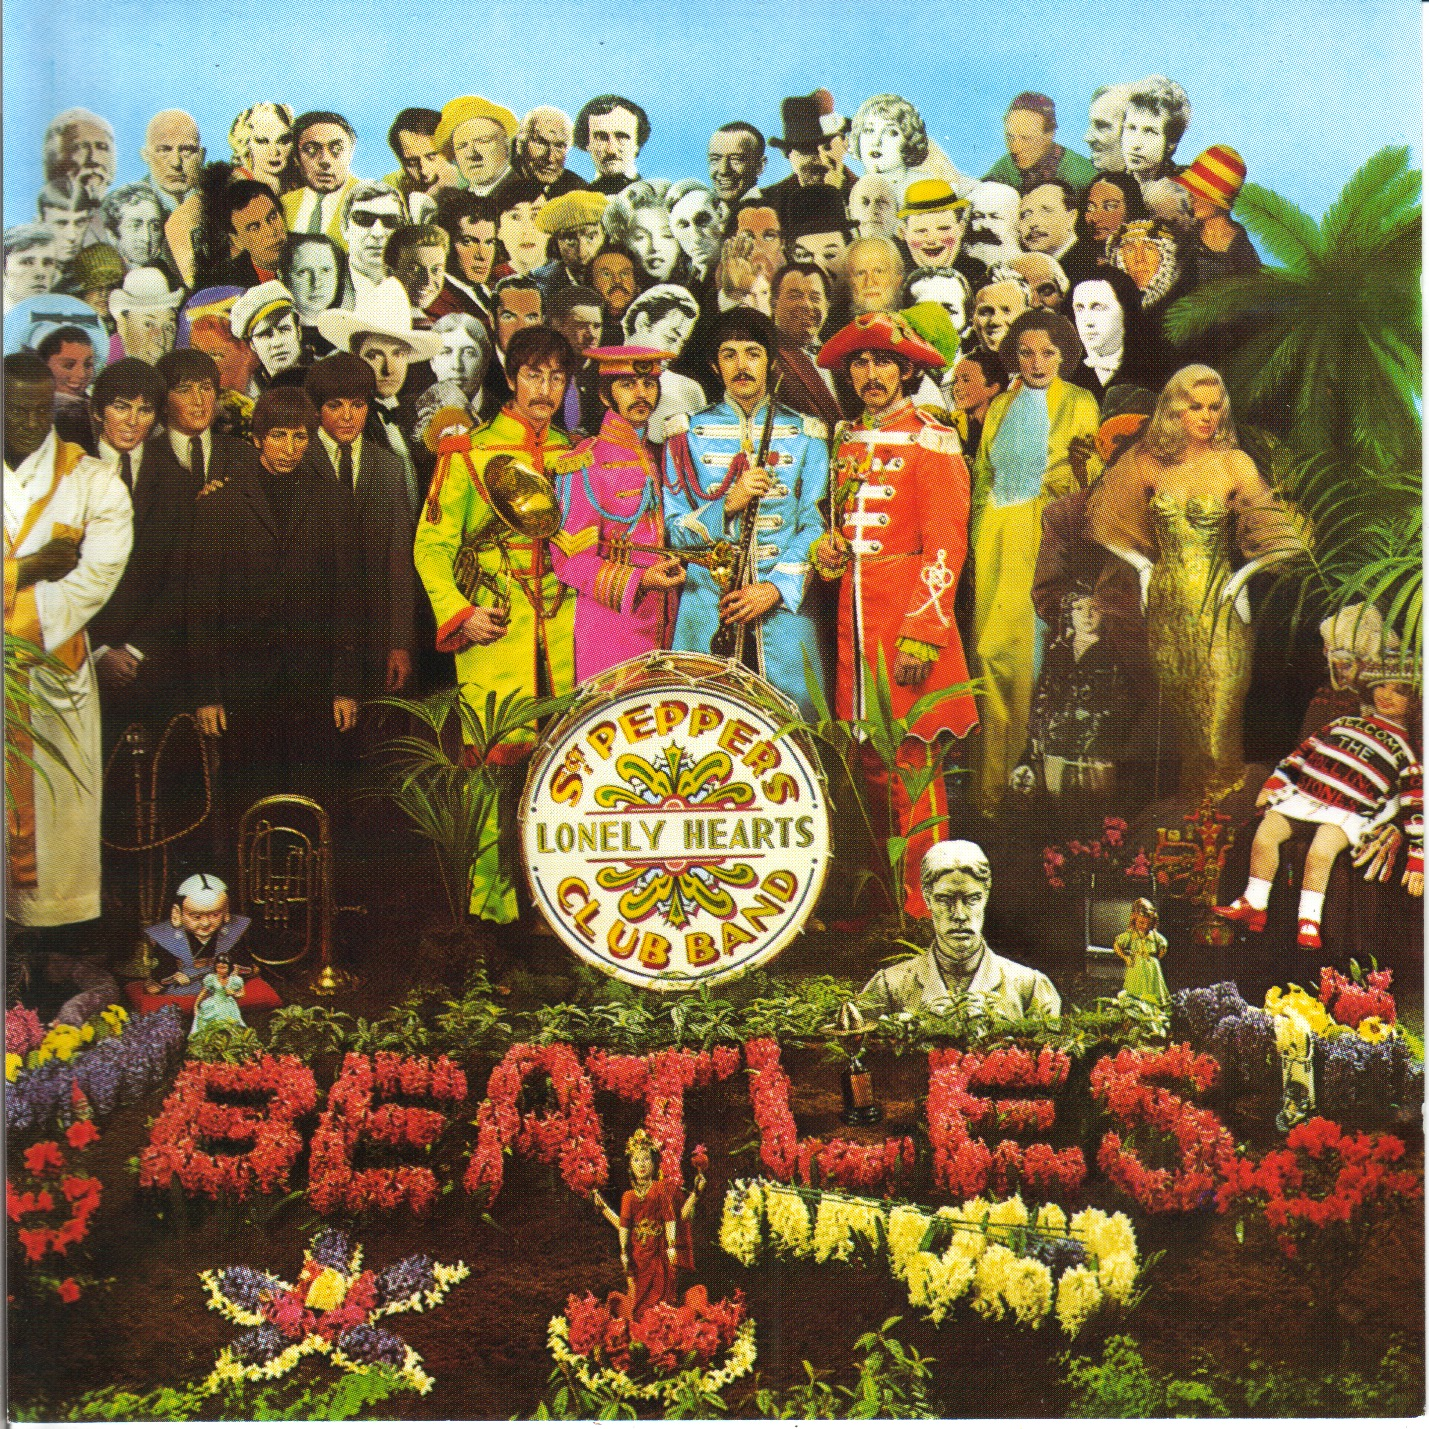 Image result for album cover sgt pepper's lonely hearts club band